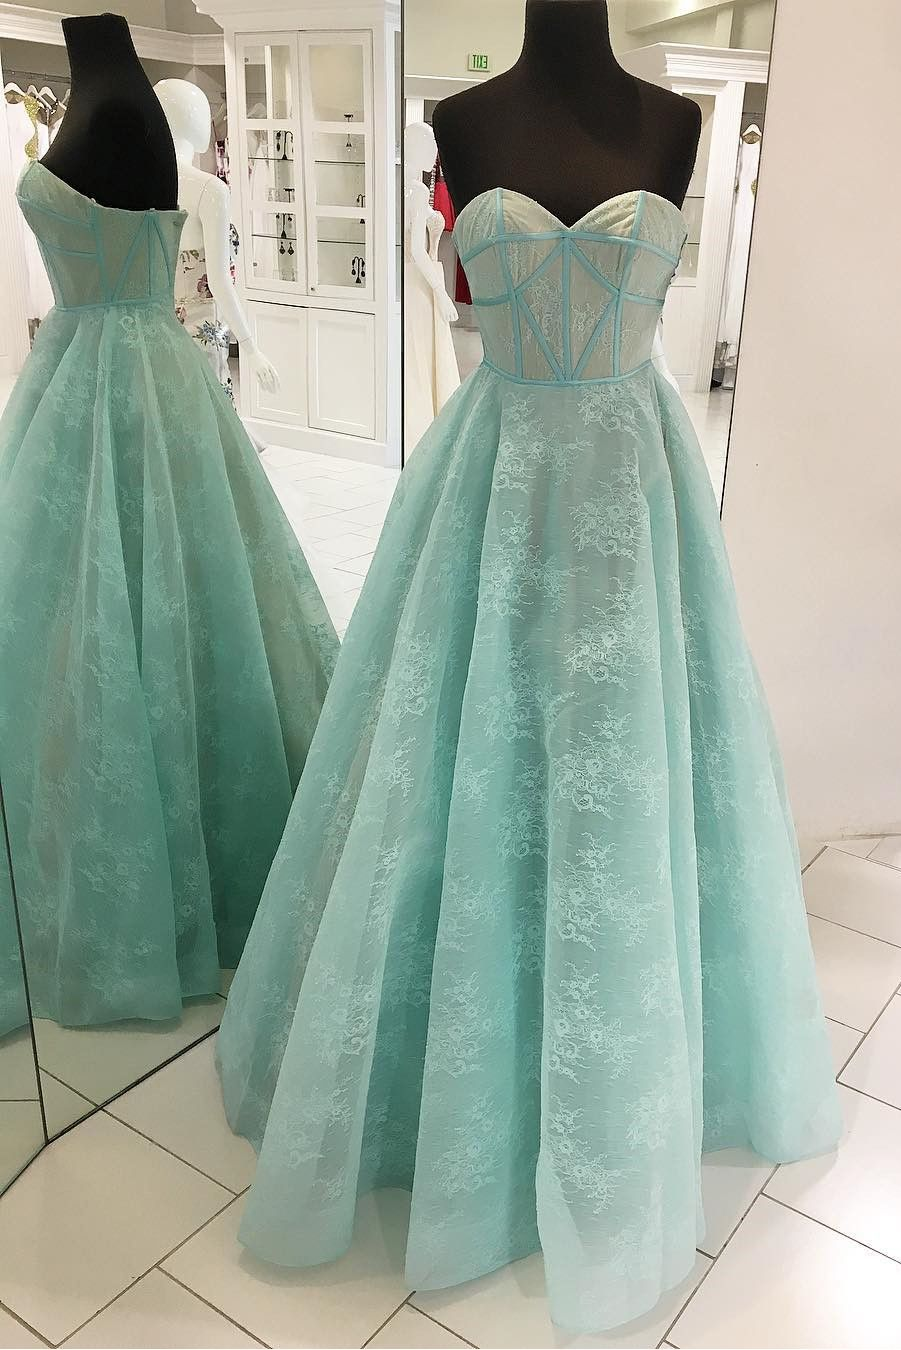 Princess Sweetheart Mint Green Lace Long Prom Dress Green Prom Dress Prom Gowns Vintage Simple Prom Dress [ 1350 x 901 Pixel ]